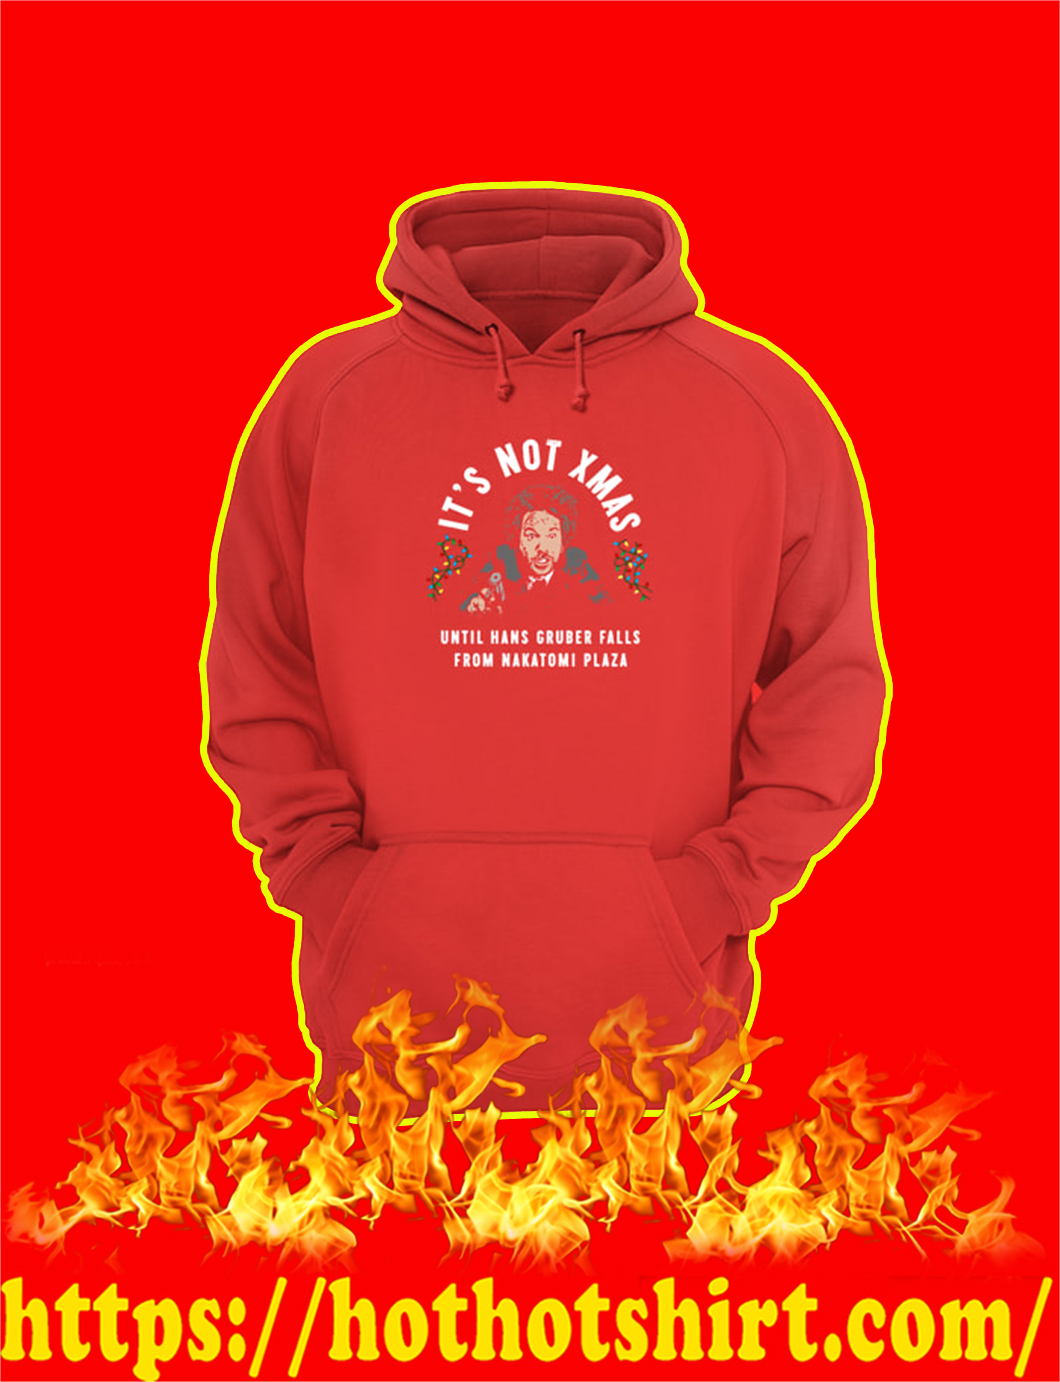 It's Not Xmas Until Hans Gruber Falls From Nakatomi Plaza hoodie